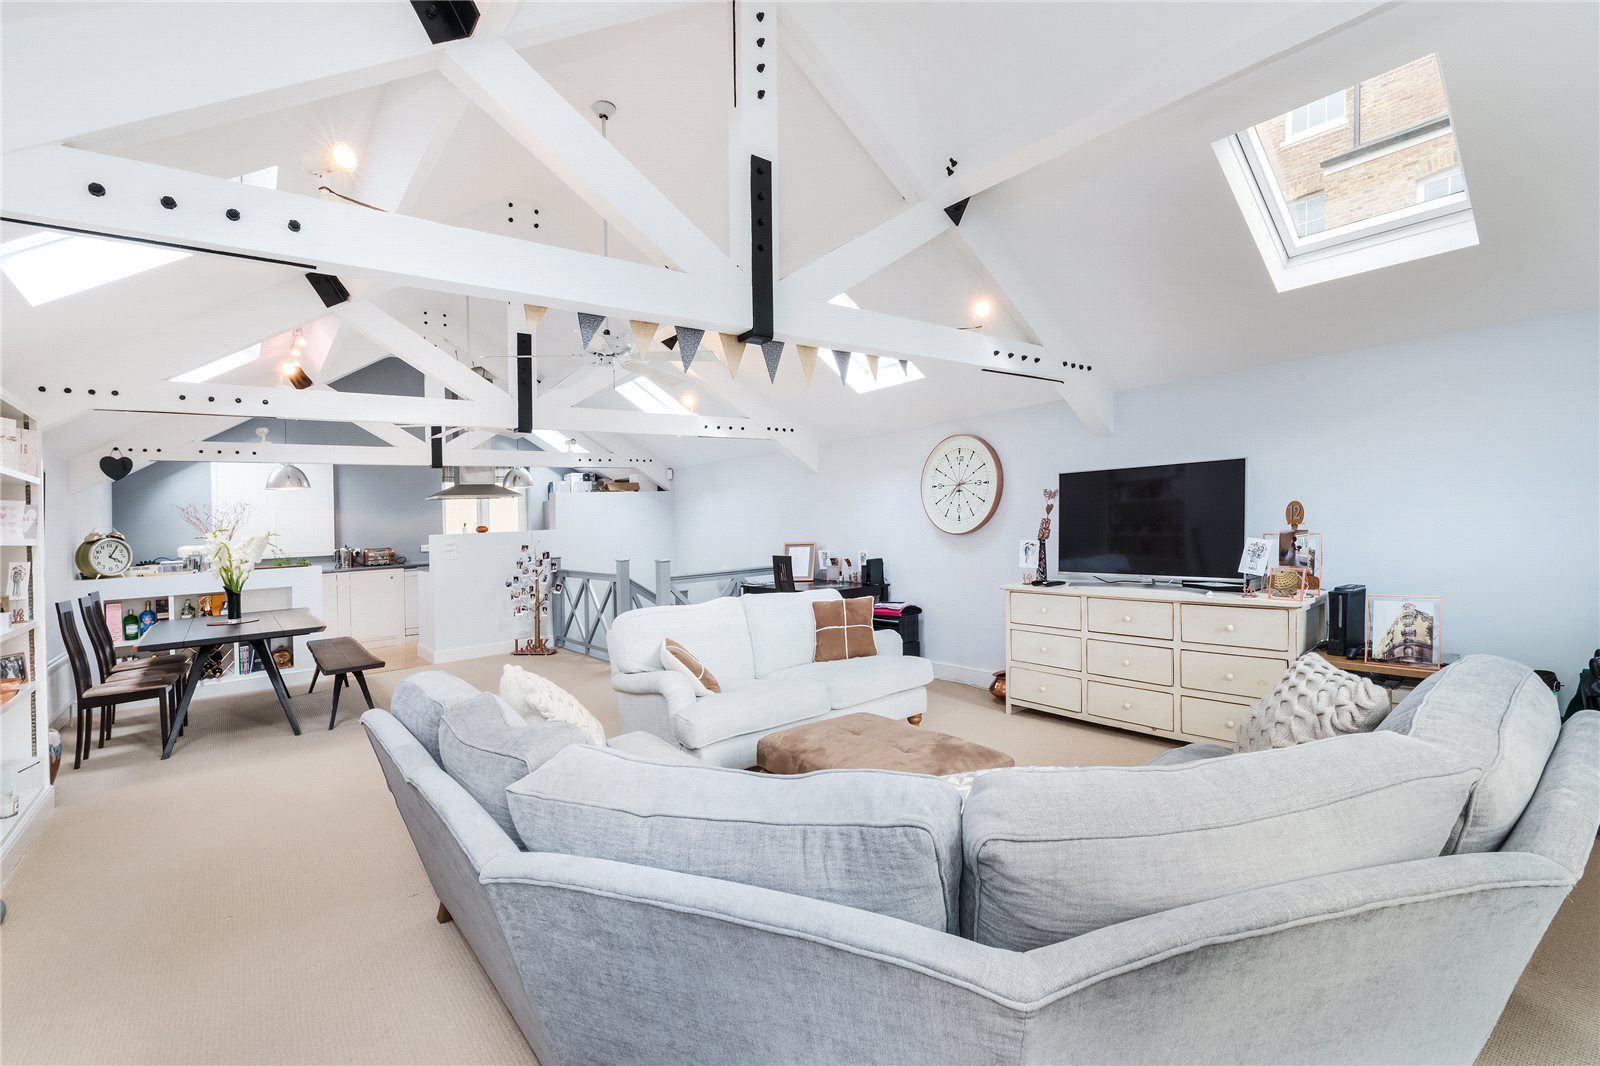 Apartments / Residences for Sale at Redcliffe Gardens, Chelsea, London, SW10 Chelsea, London, England